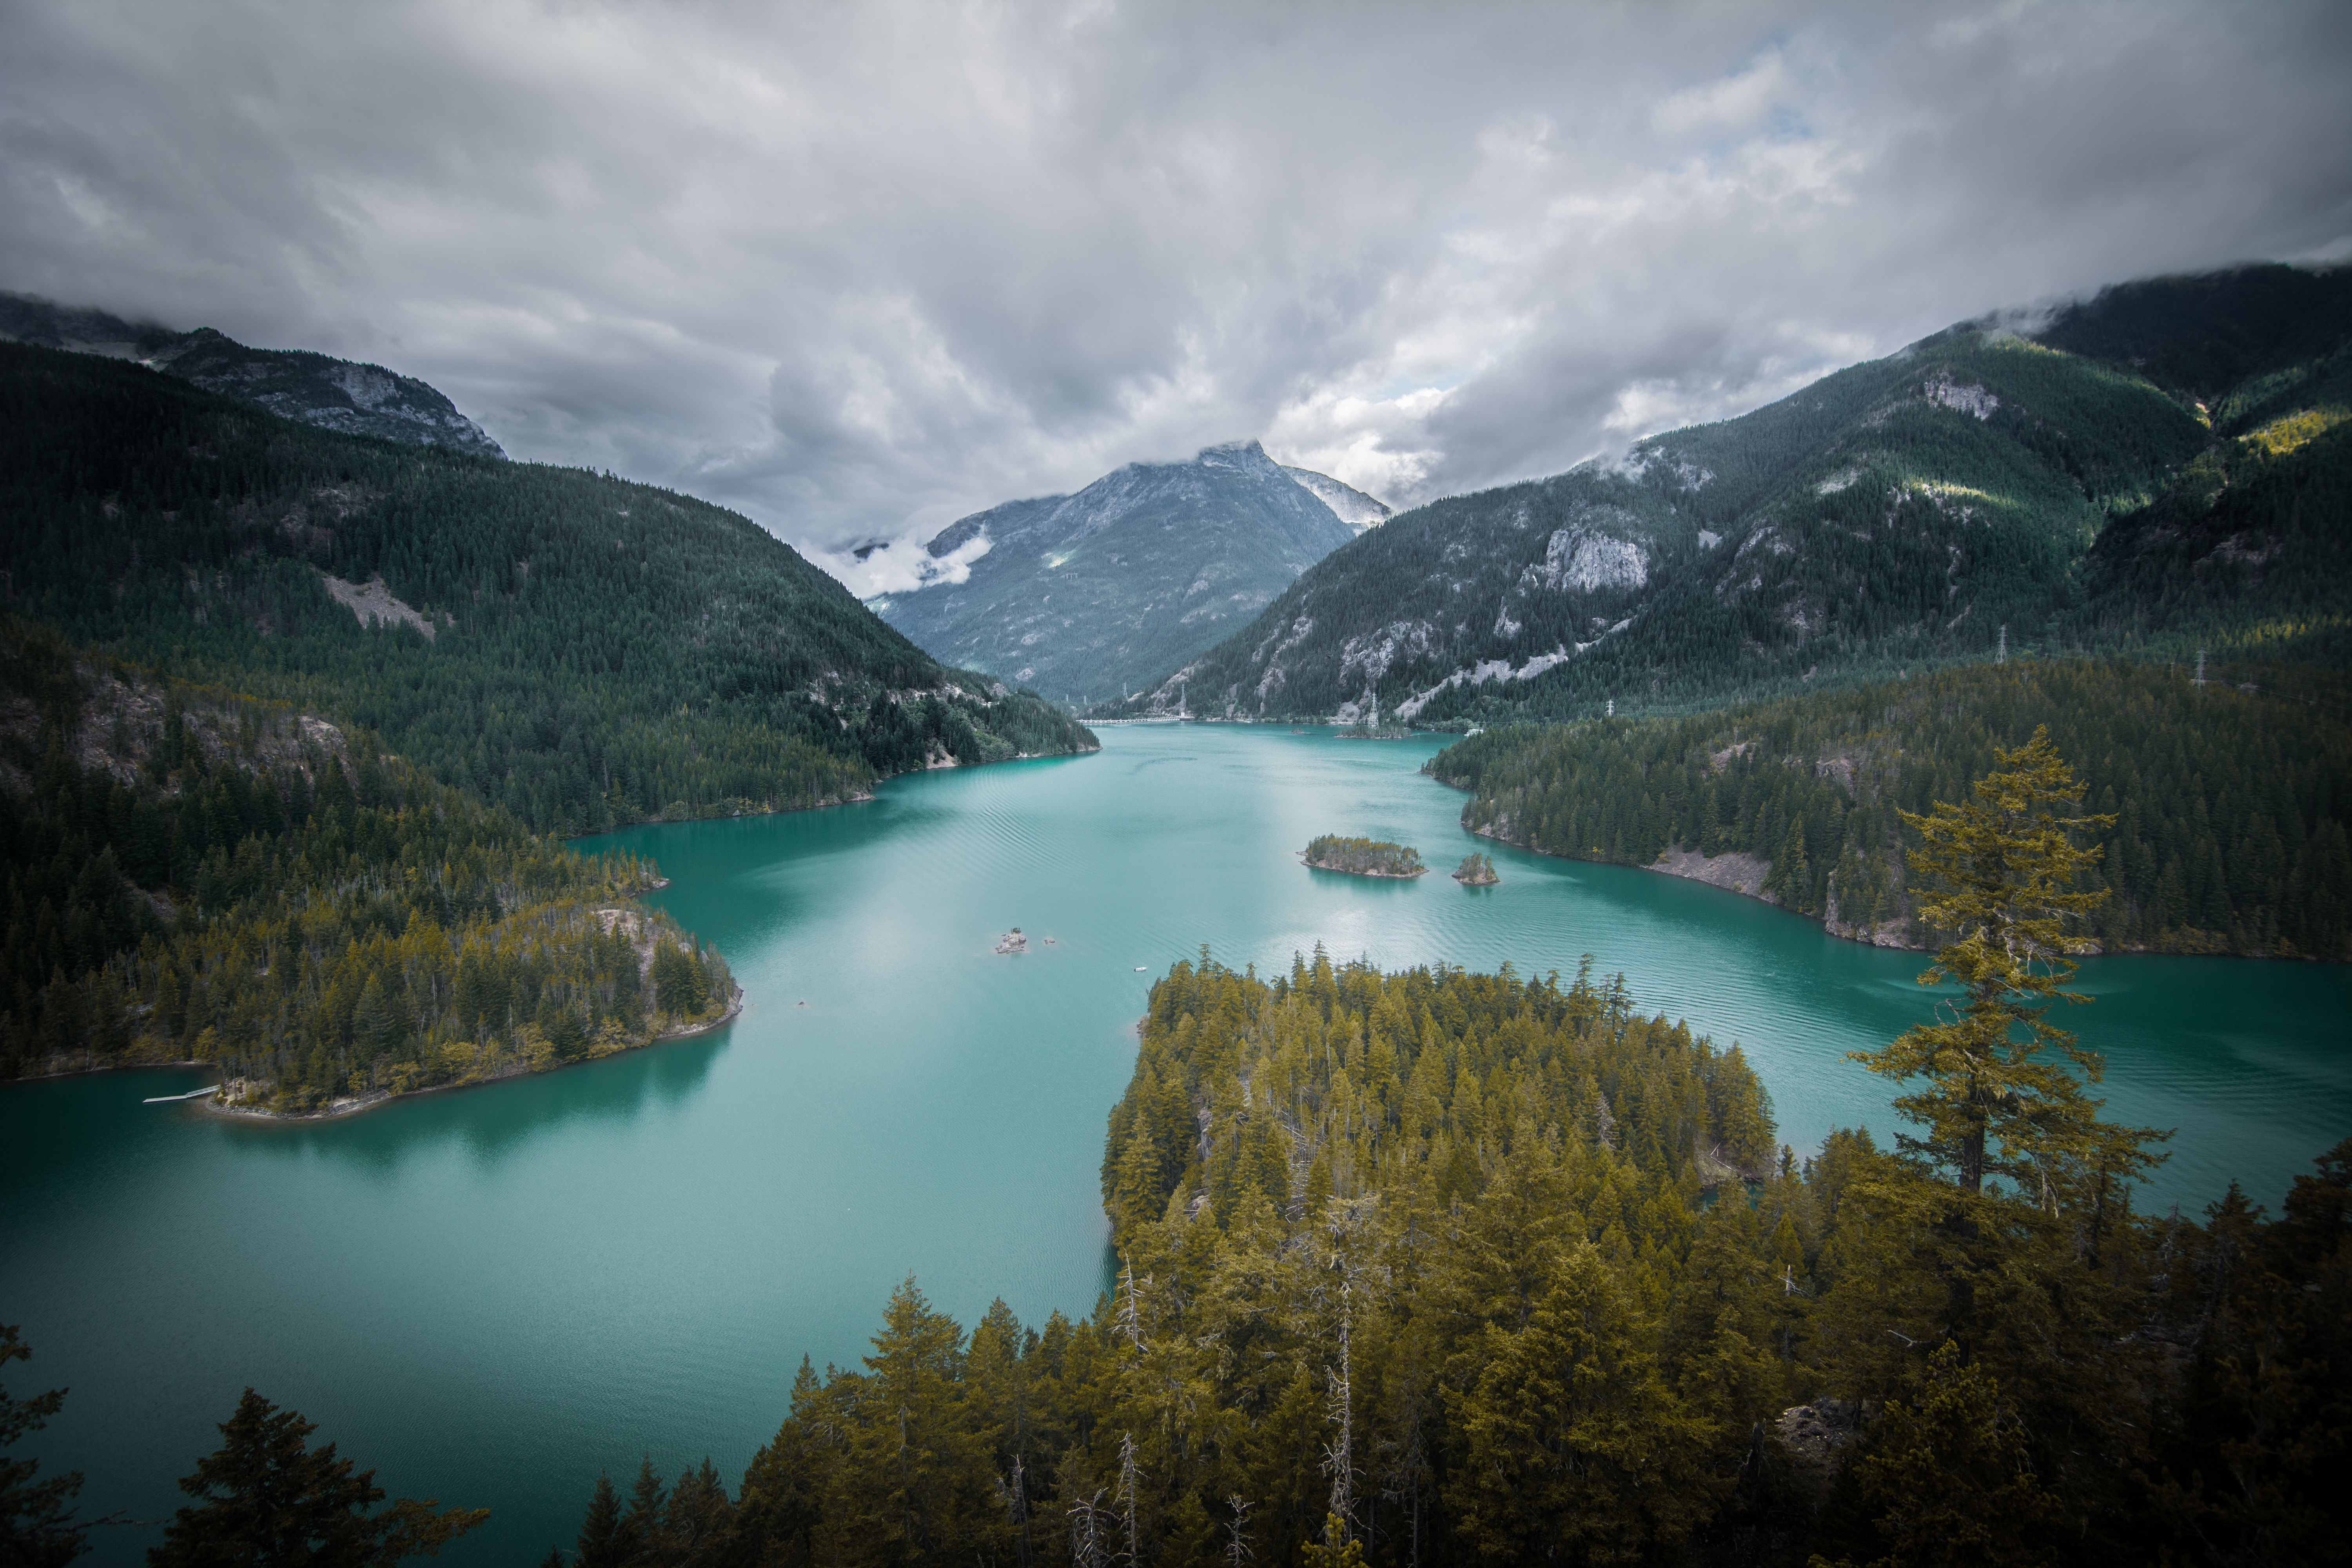 141291 free wallpaper 240x320 for phone, download images Landscape, Nature, Trees, Mountains, View From Above, Lake 240x320 for mobile